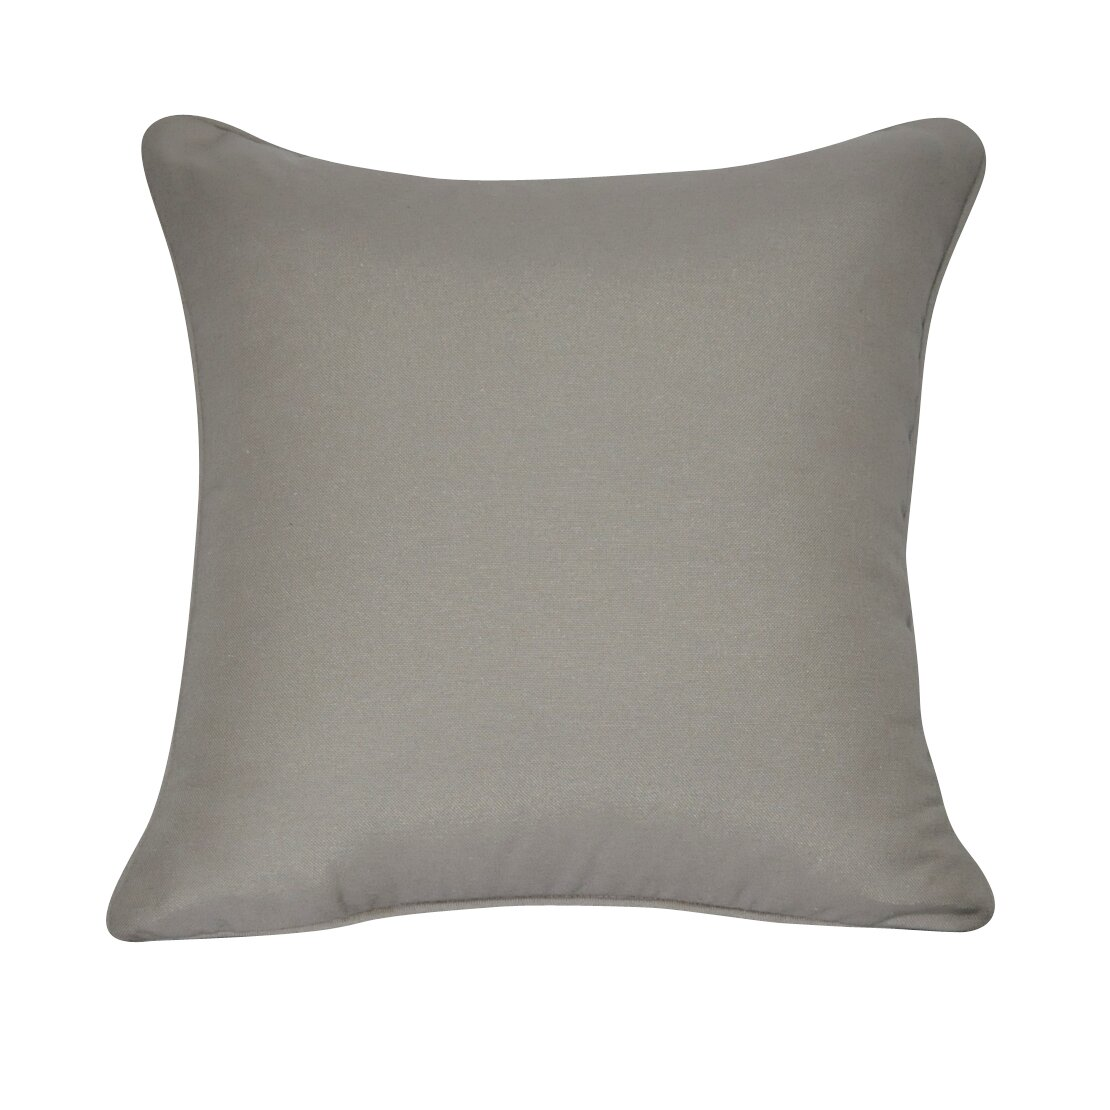 Solid Decorative Throw Pillows : Loom and Mill Solid Decorative Throw Pillow & Reviews Wayfair.ca